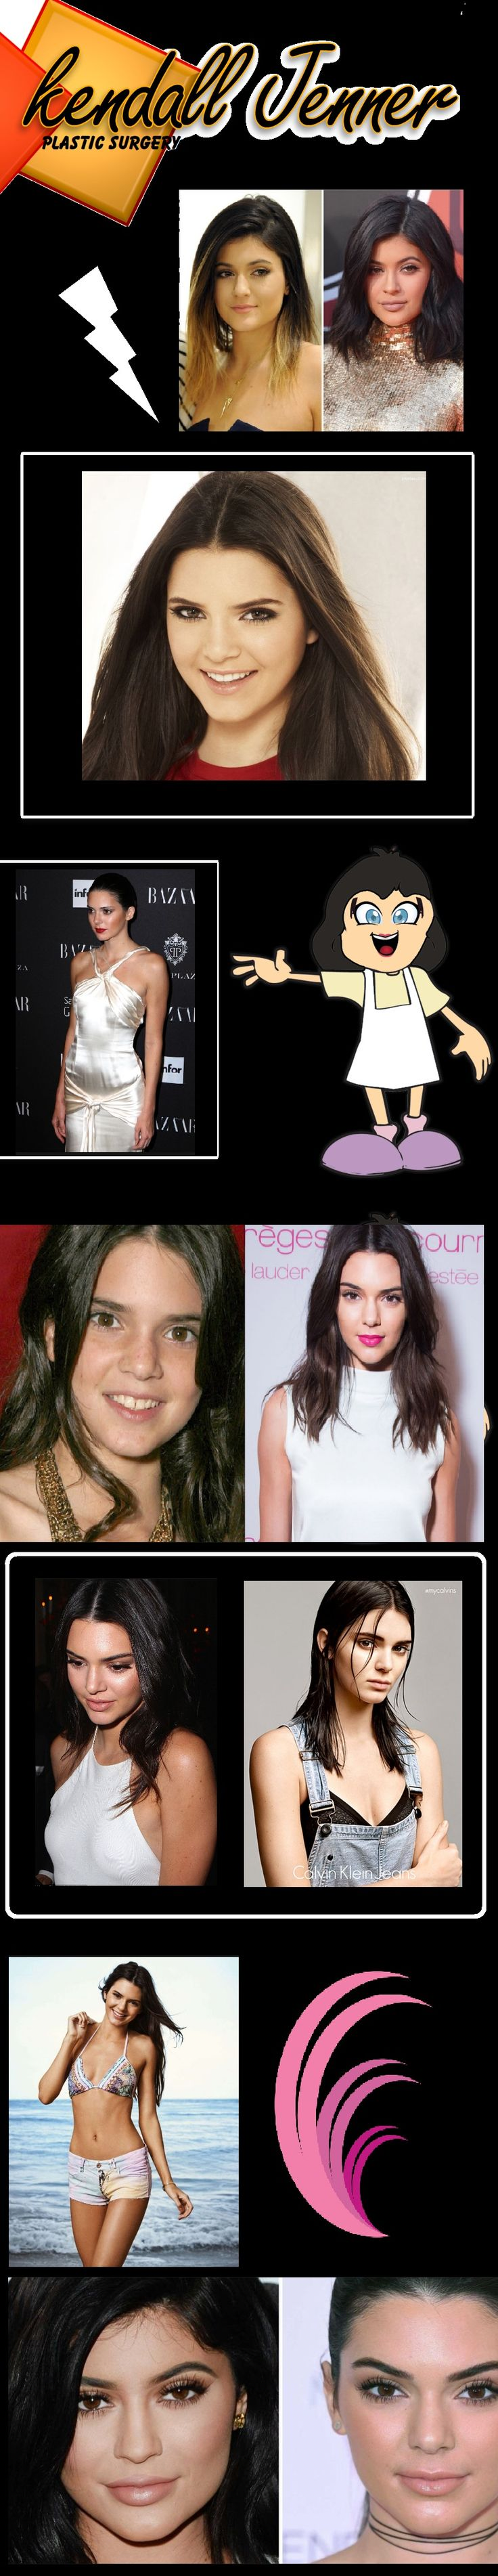 I don't know if # kendall Jenner plastic surgery But pictures does tell something.